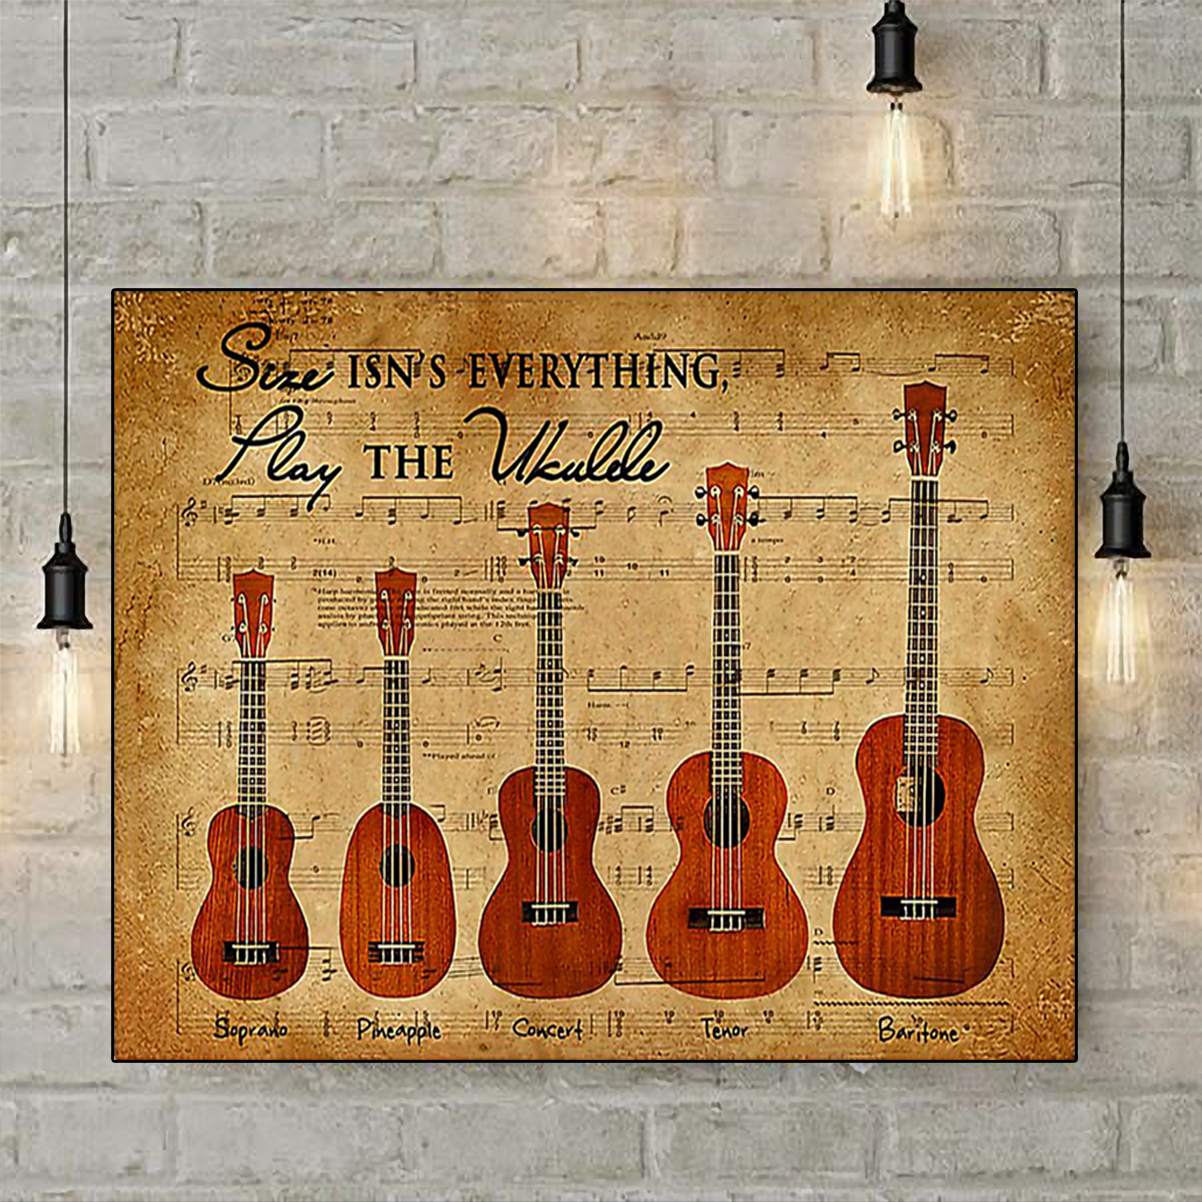 Size isn't everything play the ukulele poster A2